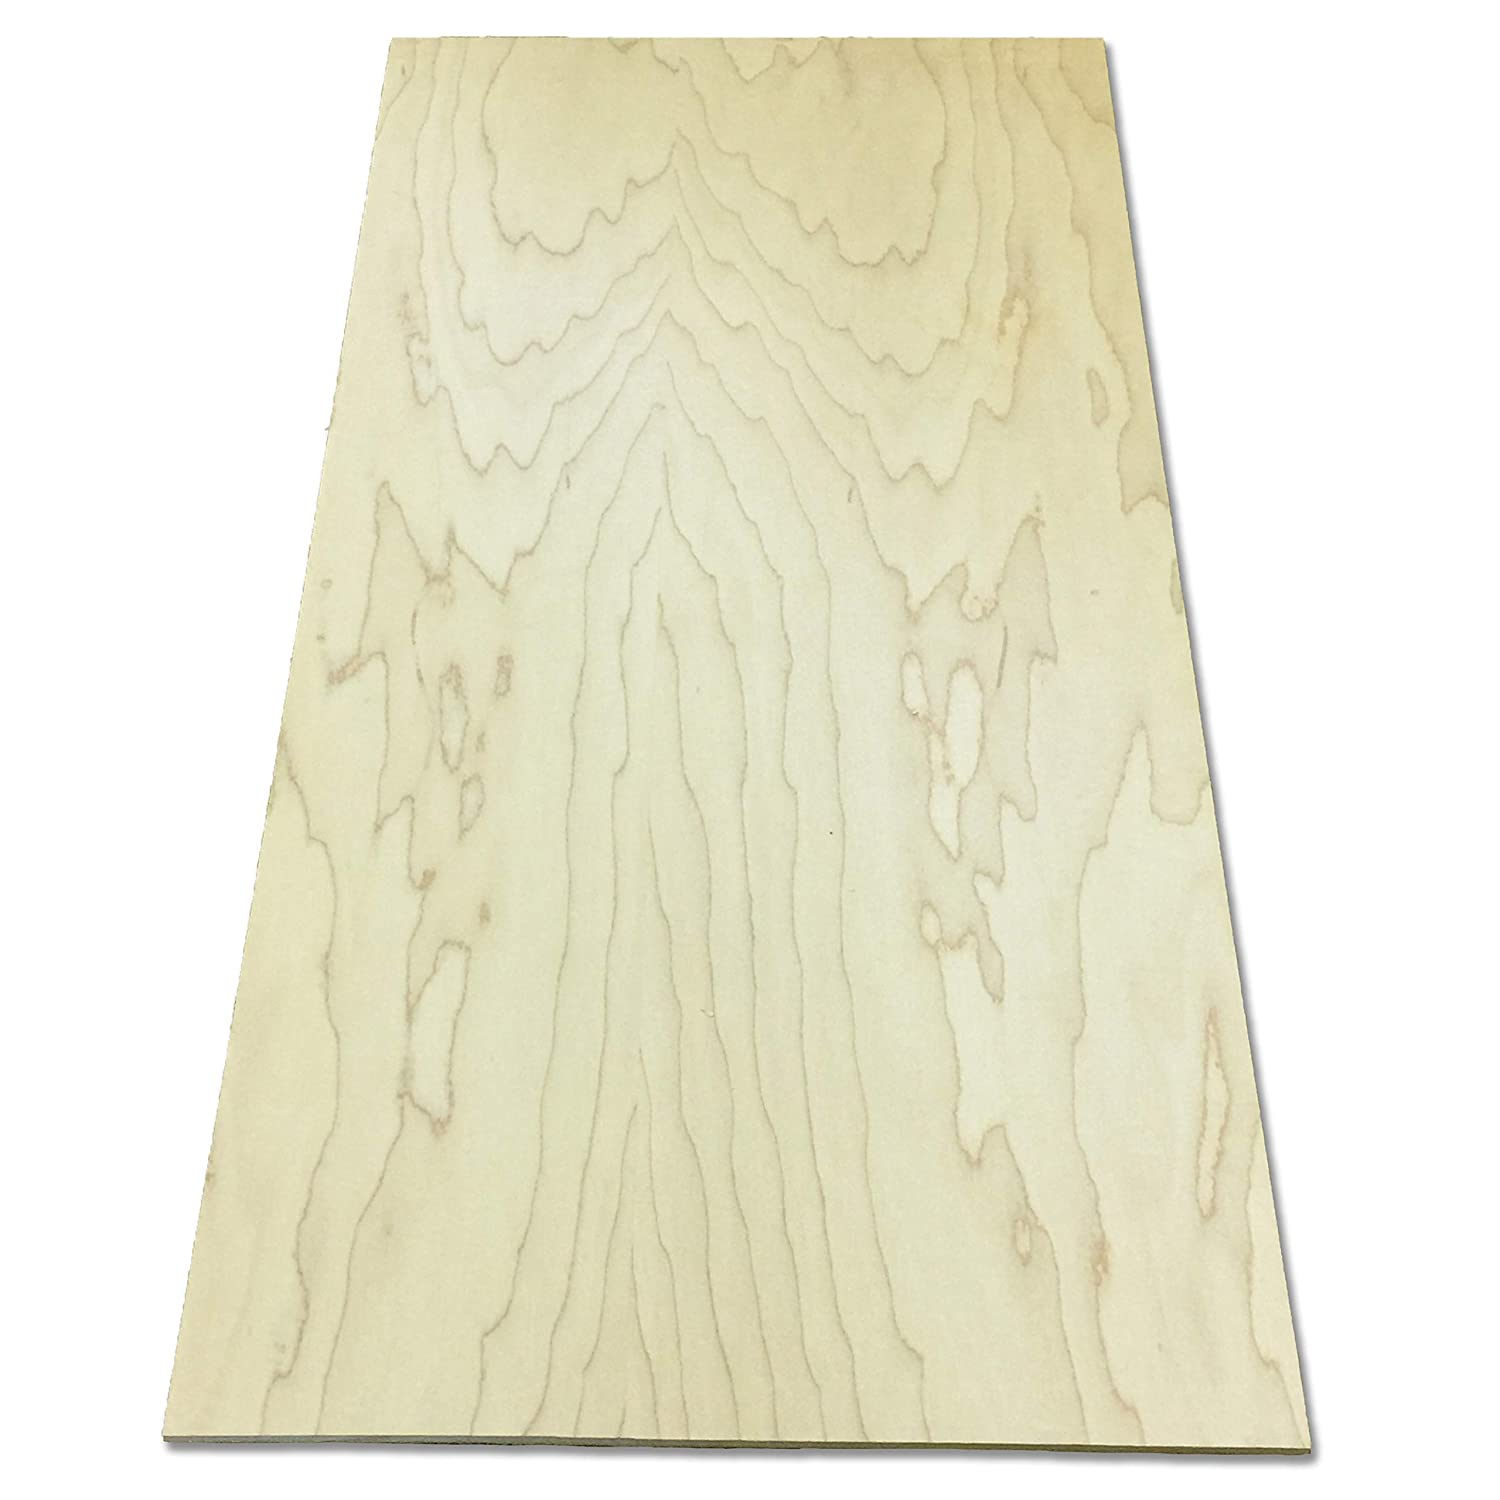 5 mm 1/4 x 12 x 24 Premium Maple Plywood - A/1 Grade - Flat Sheets by Whirled Planet (6)